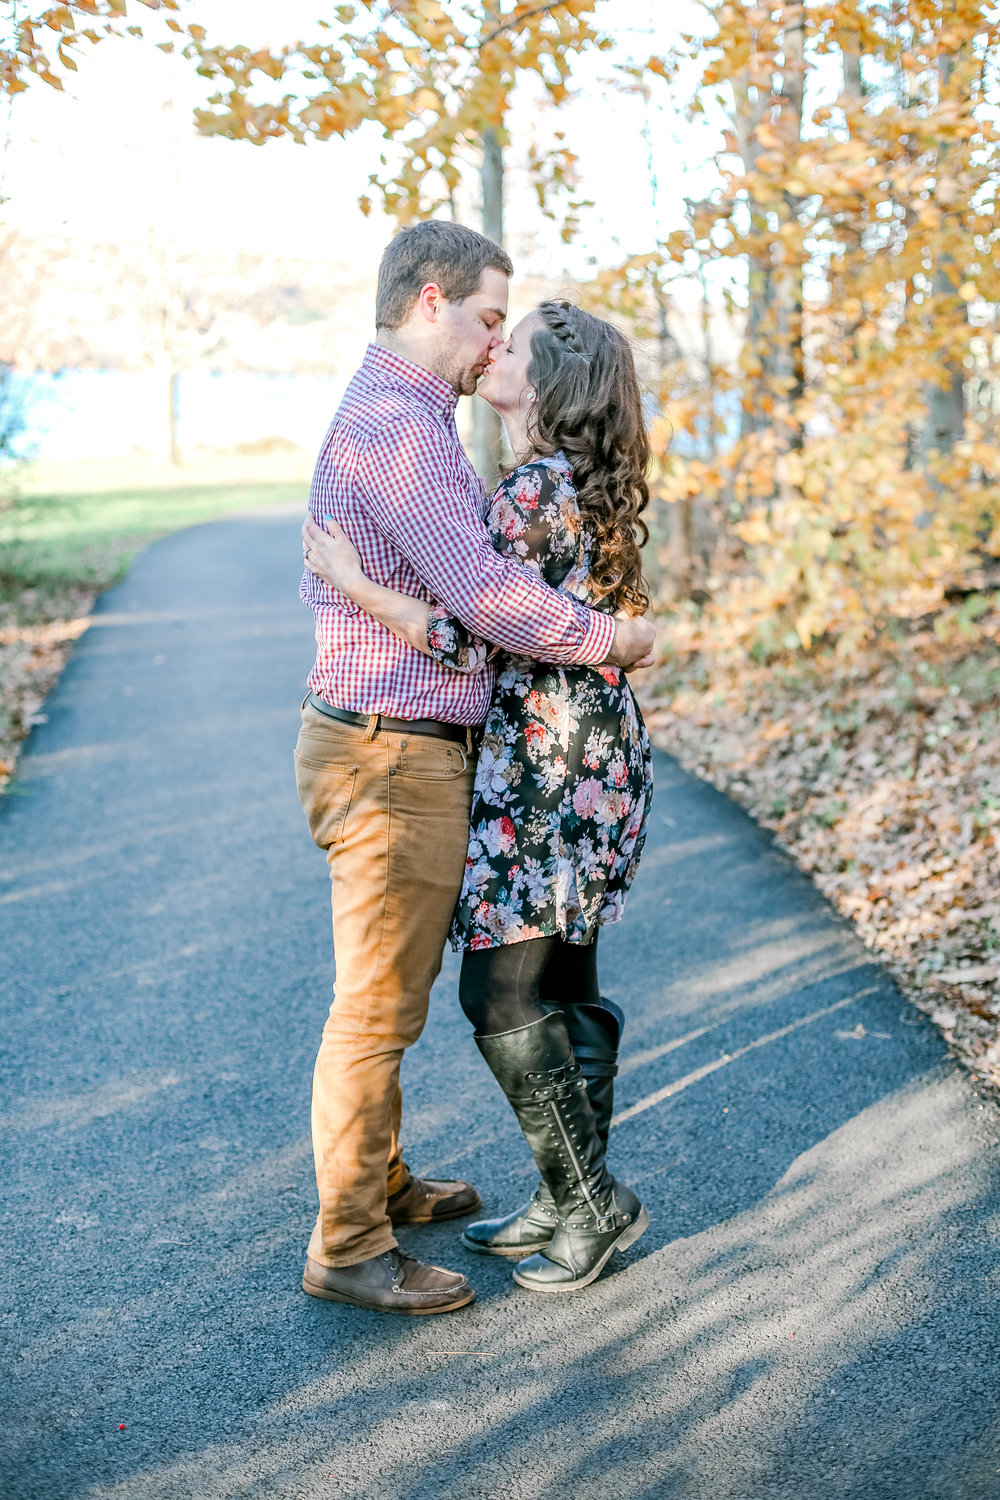 Bucks county Peace Valley Park Doylestown Lehigh Valley fall windy engagement session wedding and lifestyle photographer Lytle Photo Co (24 of 109).jpg